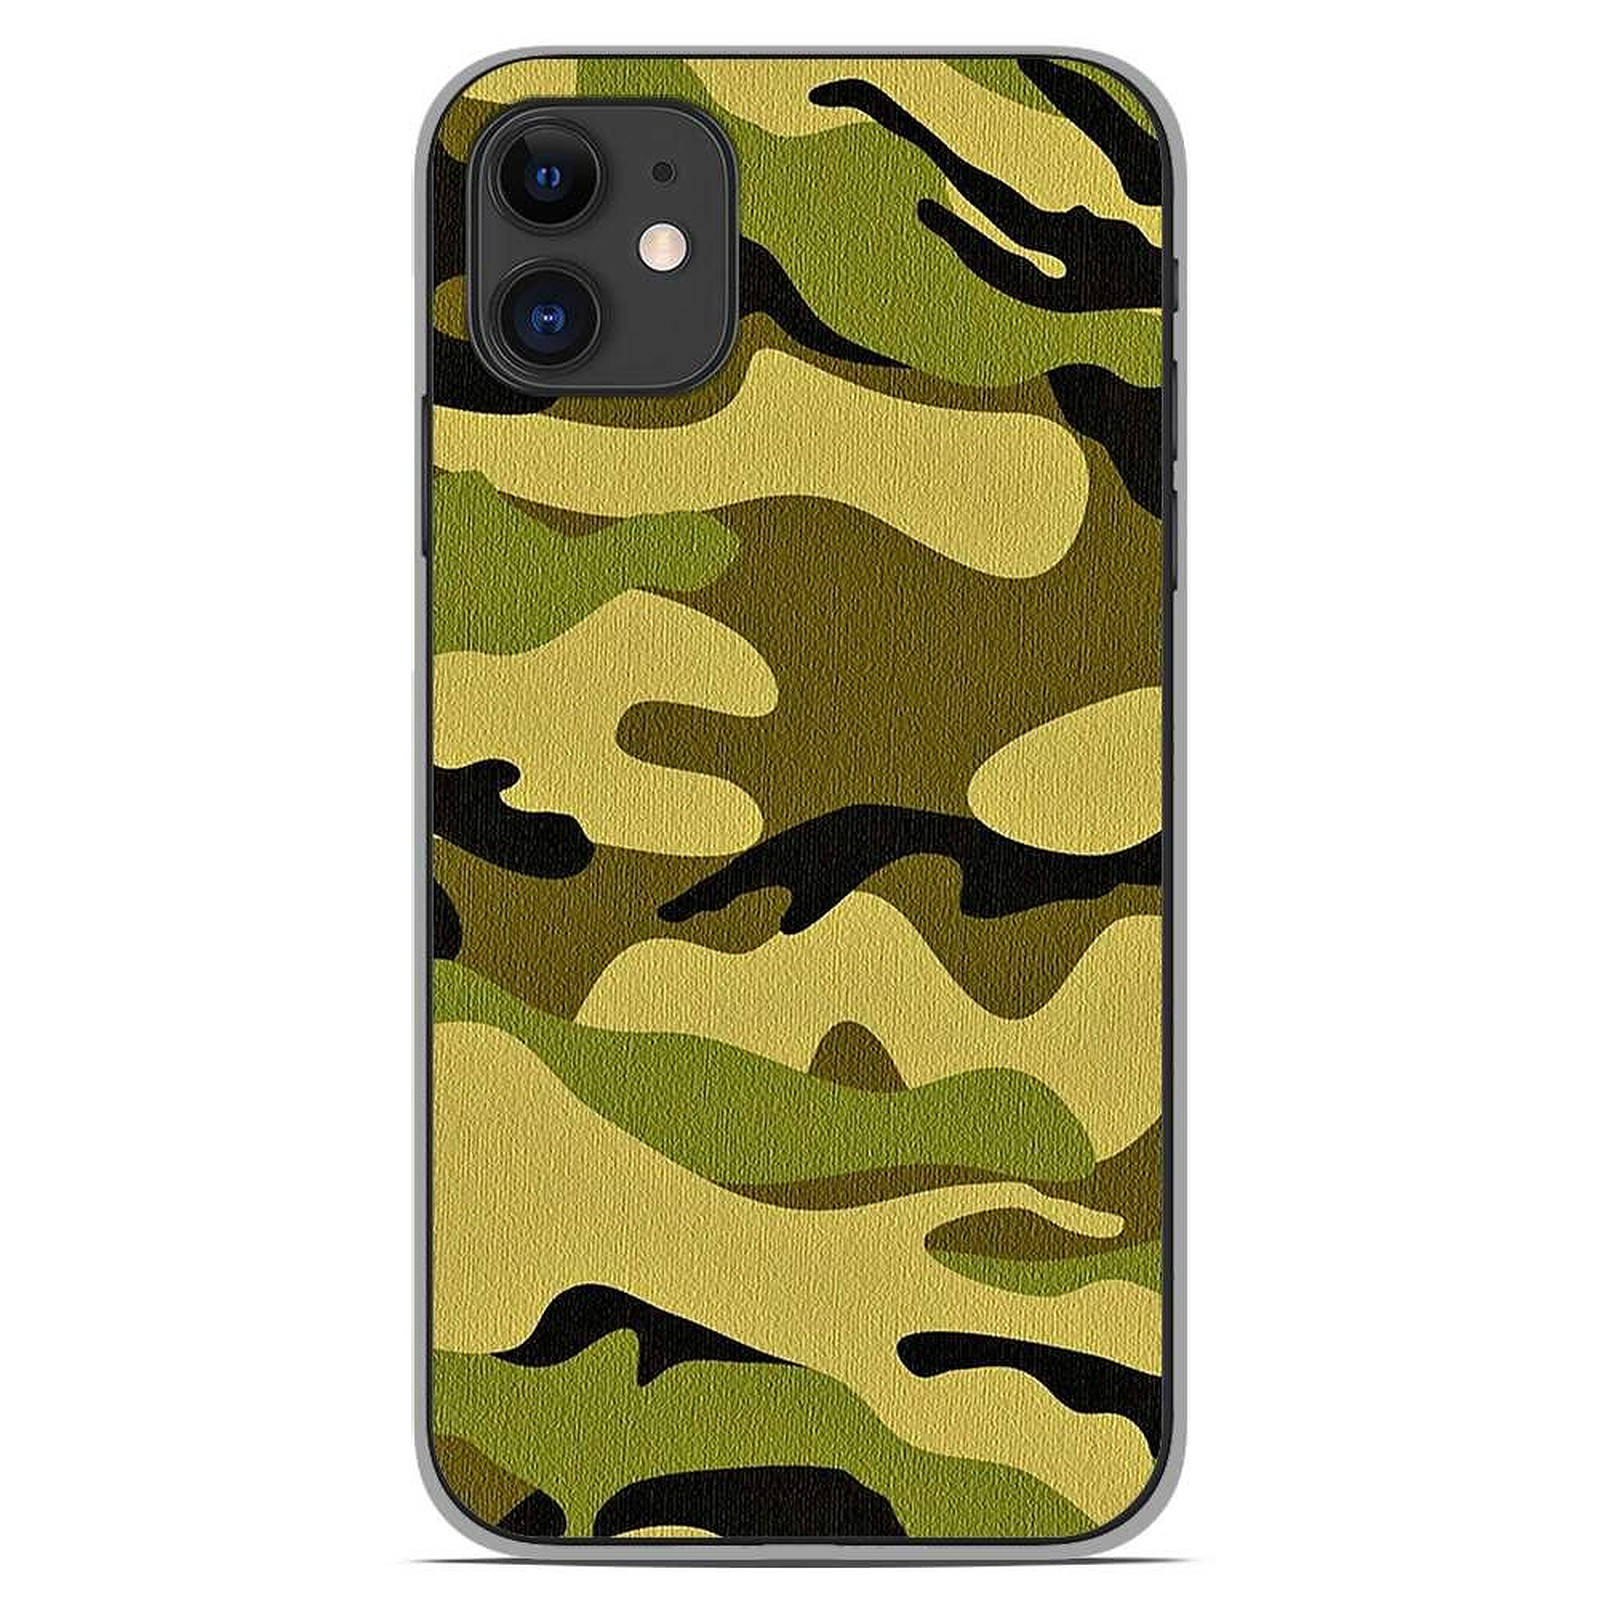 1001 Coques Coque silicone gel Apple iPhone 11 motif Camouflage